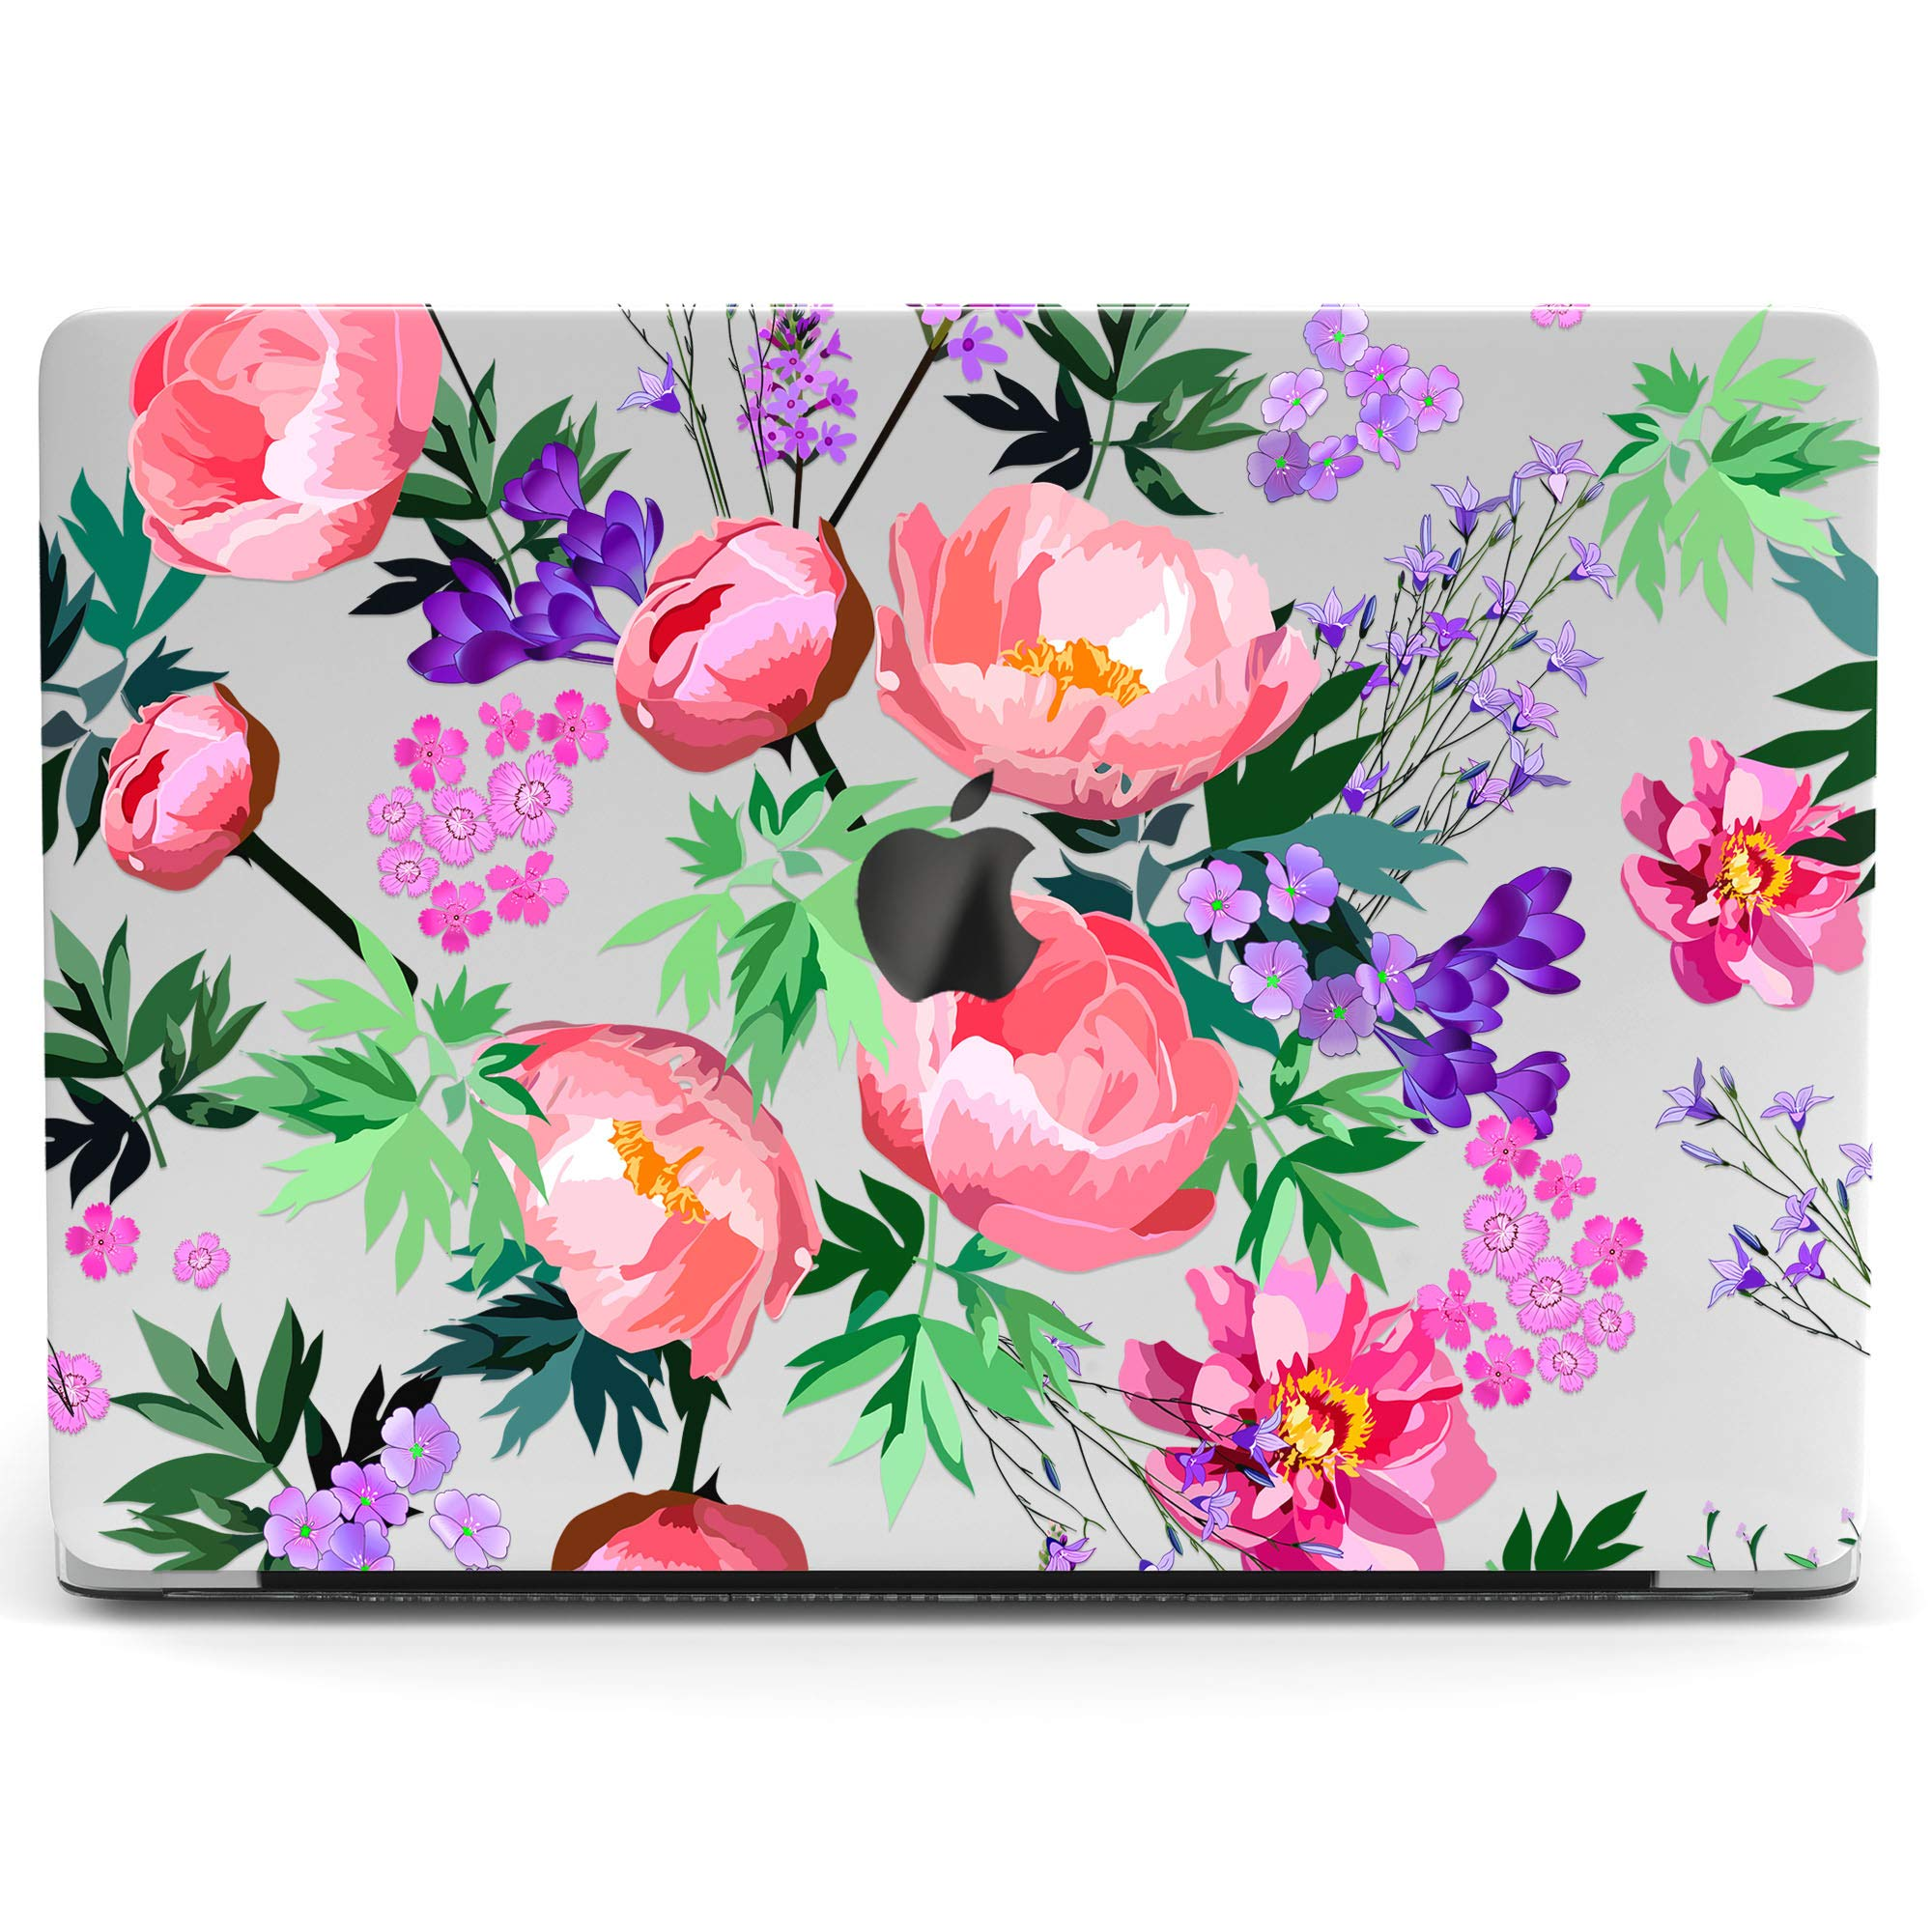 Wonder Wild Mac Retina Cover MacBook Pro 15 inch 12 11 Clear Hard Case Air 13 Apple 2019 Protective Laptop 2018 2017 2016 2015 Plastic Print Touch Bar Flowers Wildflowers Bouquet Pink Peon Watercolor